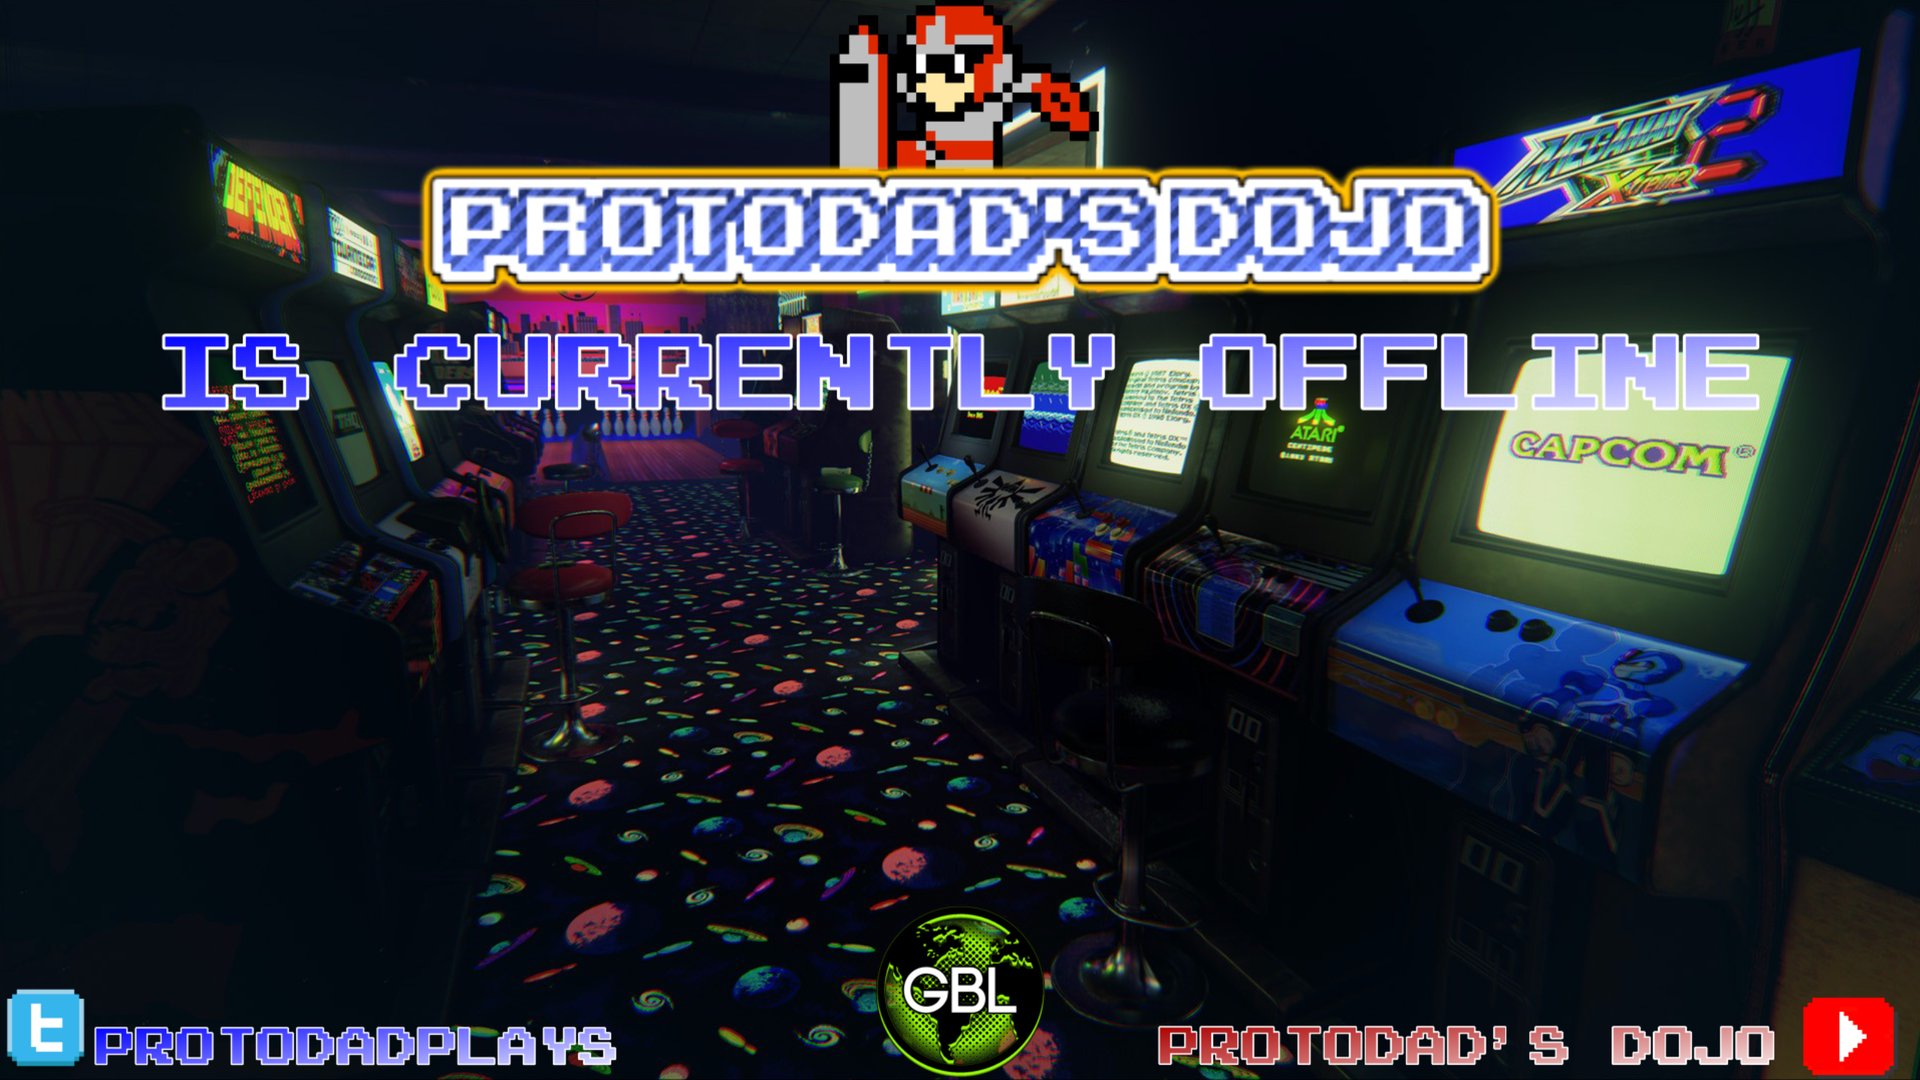 Twitch stream of ProtoDadsDojo